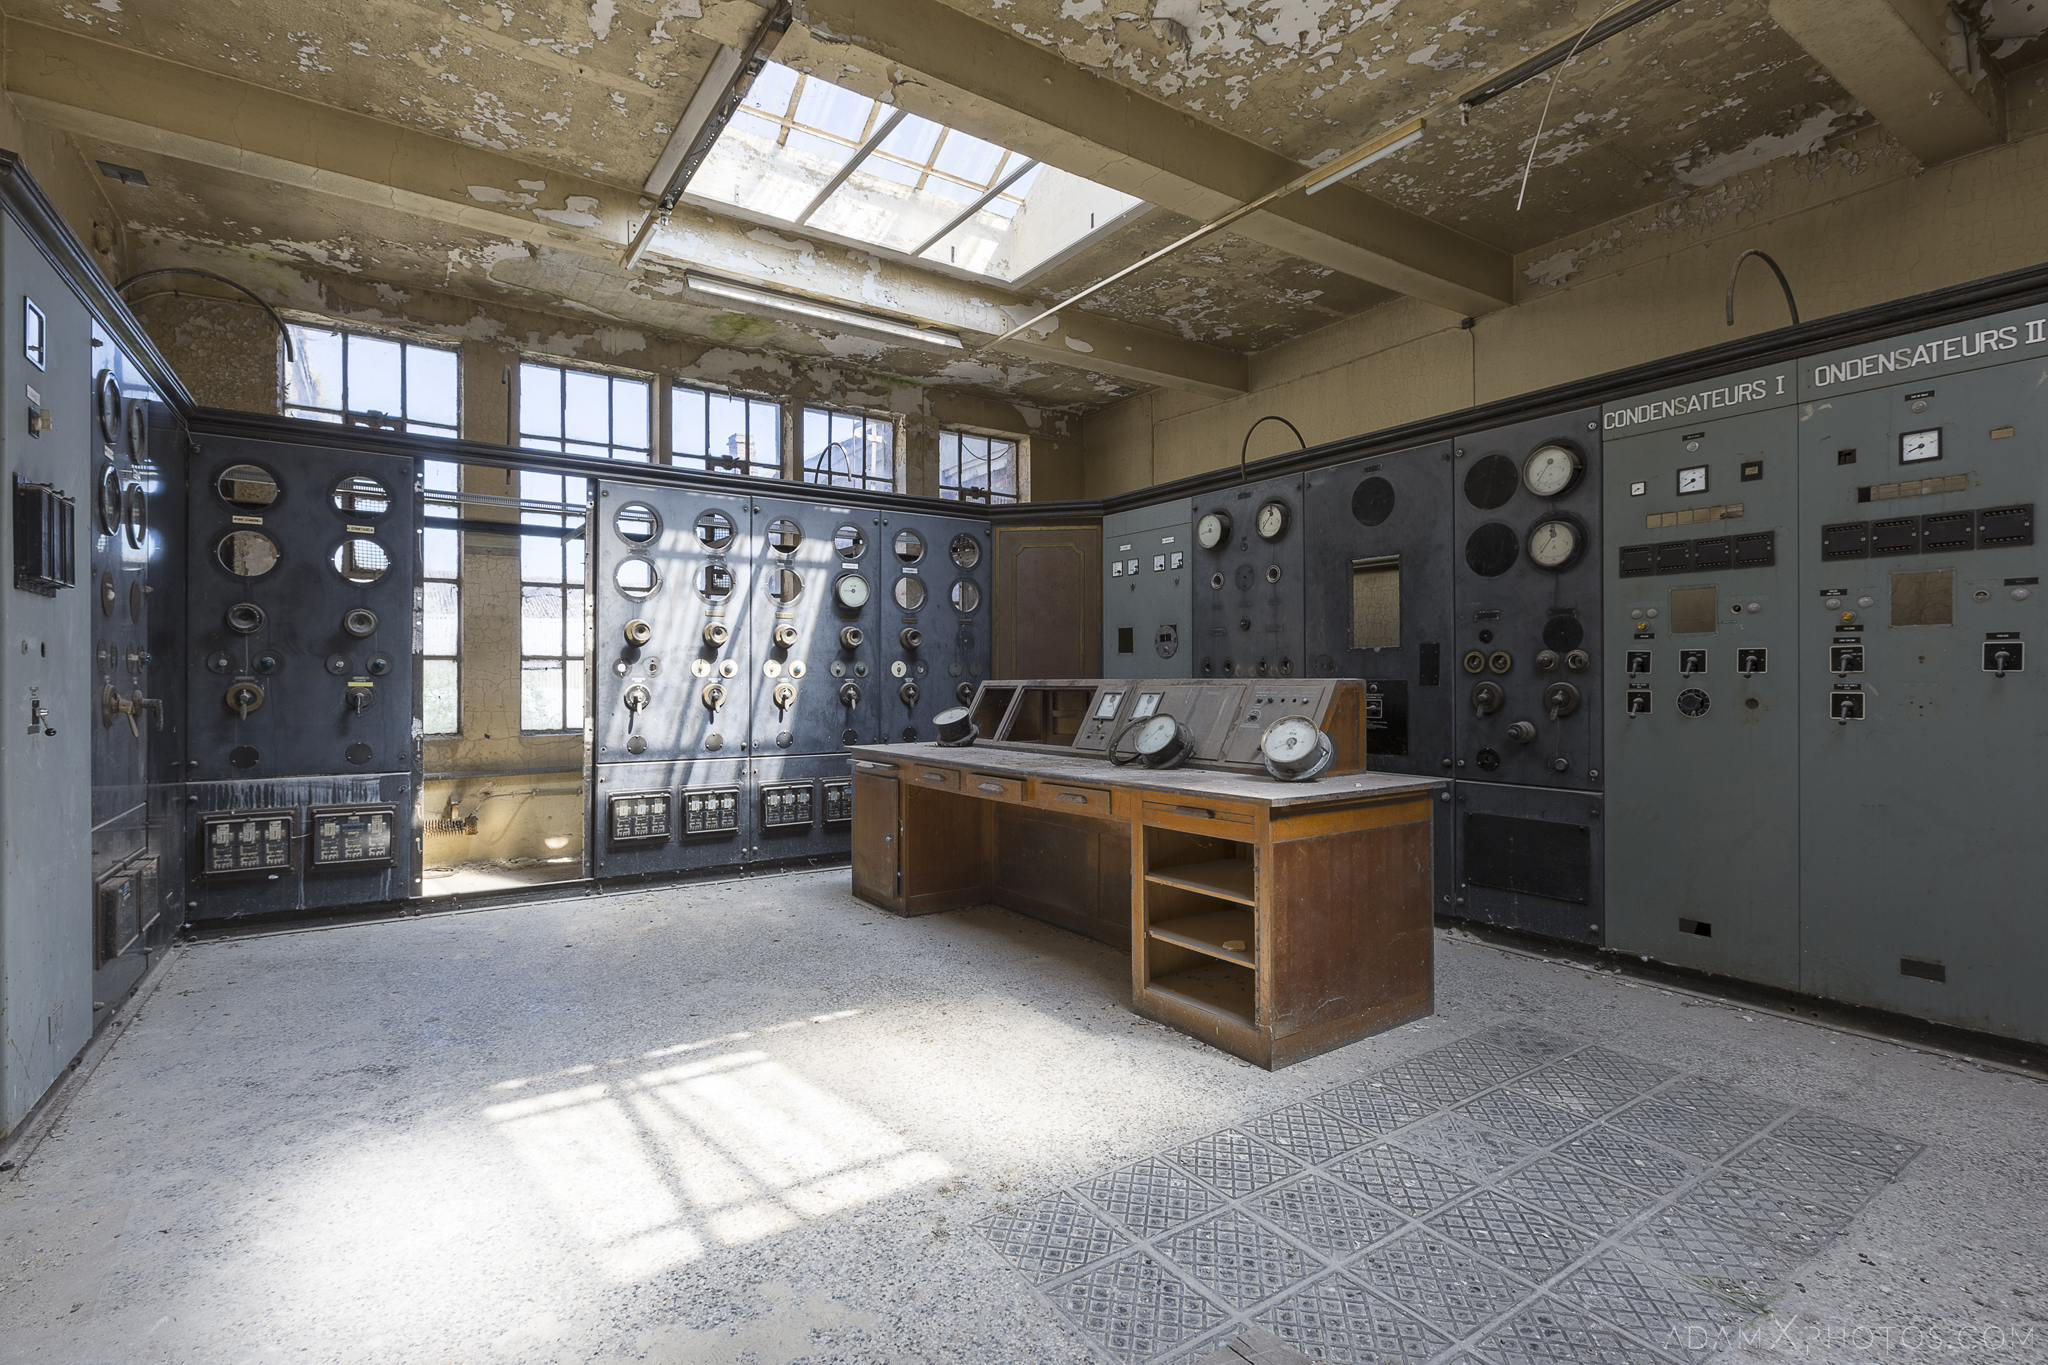 peeling paint switches dials panels desk powerplant Steampunk Commander control room Adam X Urban Exploration Belgium Access 2017 Abandoned decay lost forgotten derelict location creepy haunting eerie